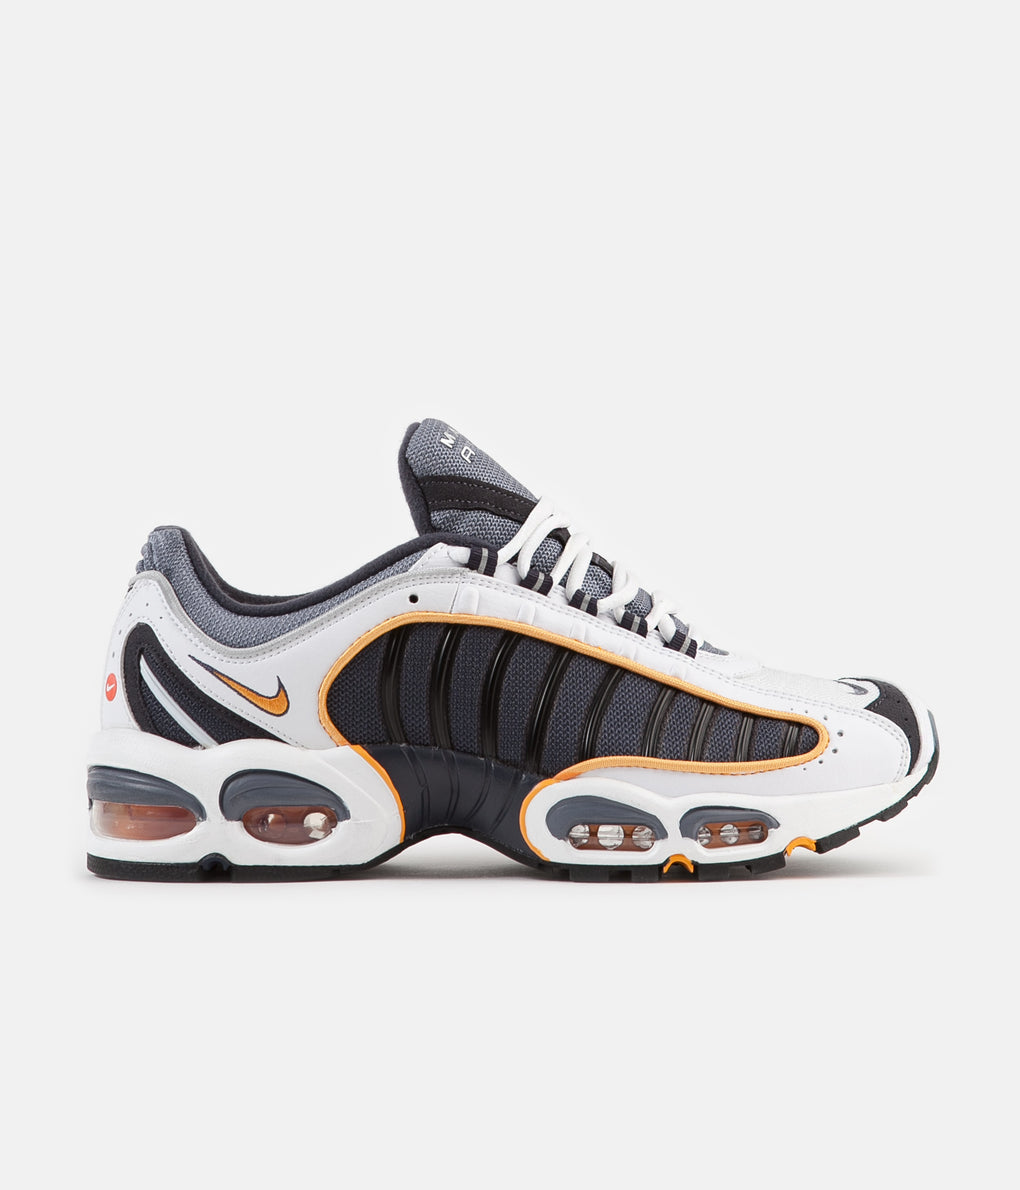 Nike Air Max Tailwind IV Shoes - Metro Grey / White - Resin - White